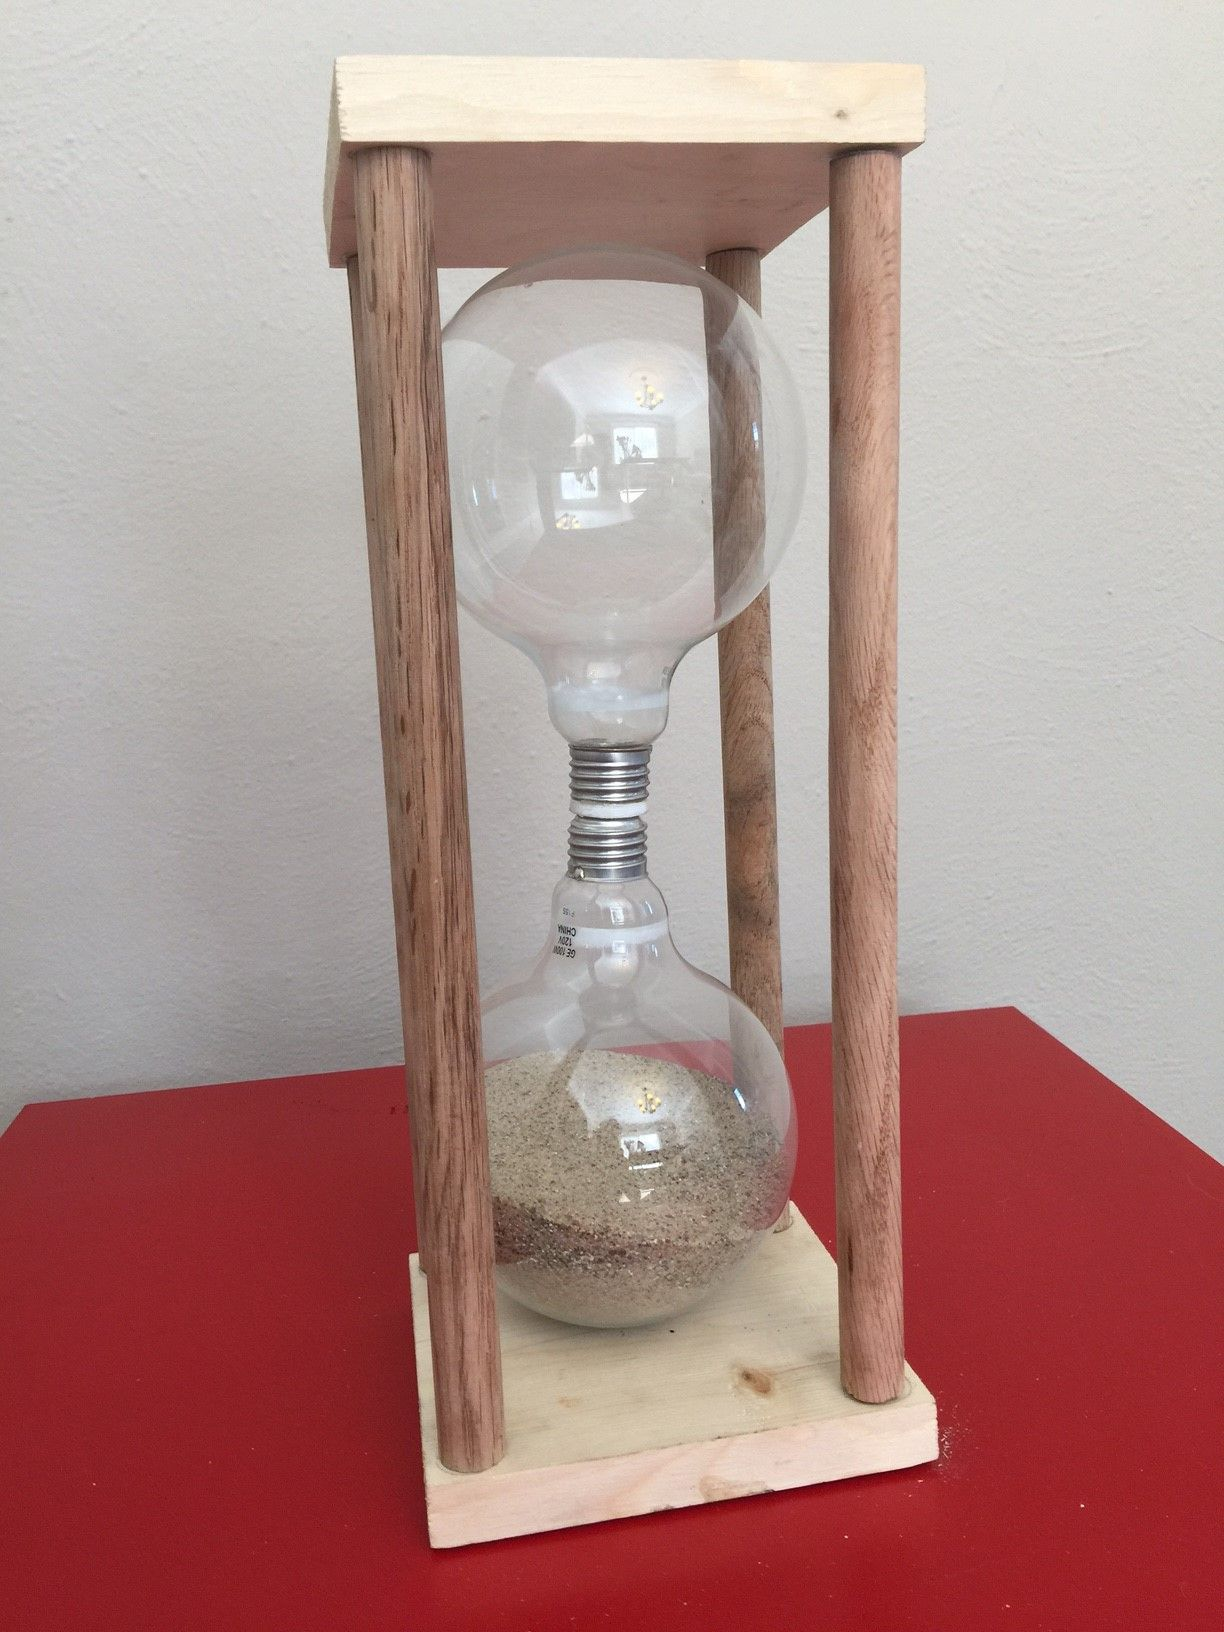 How to Make an Hourglass Clock Out of Light Bulbs forecast